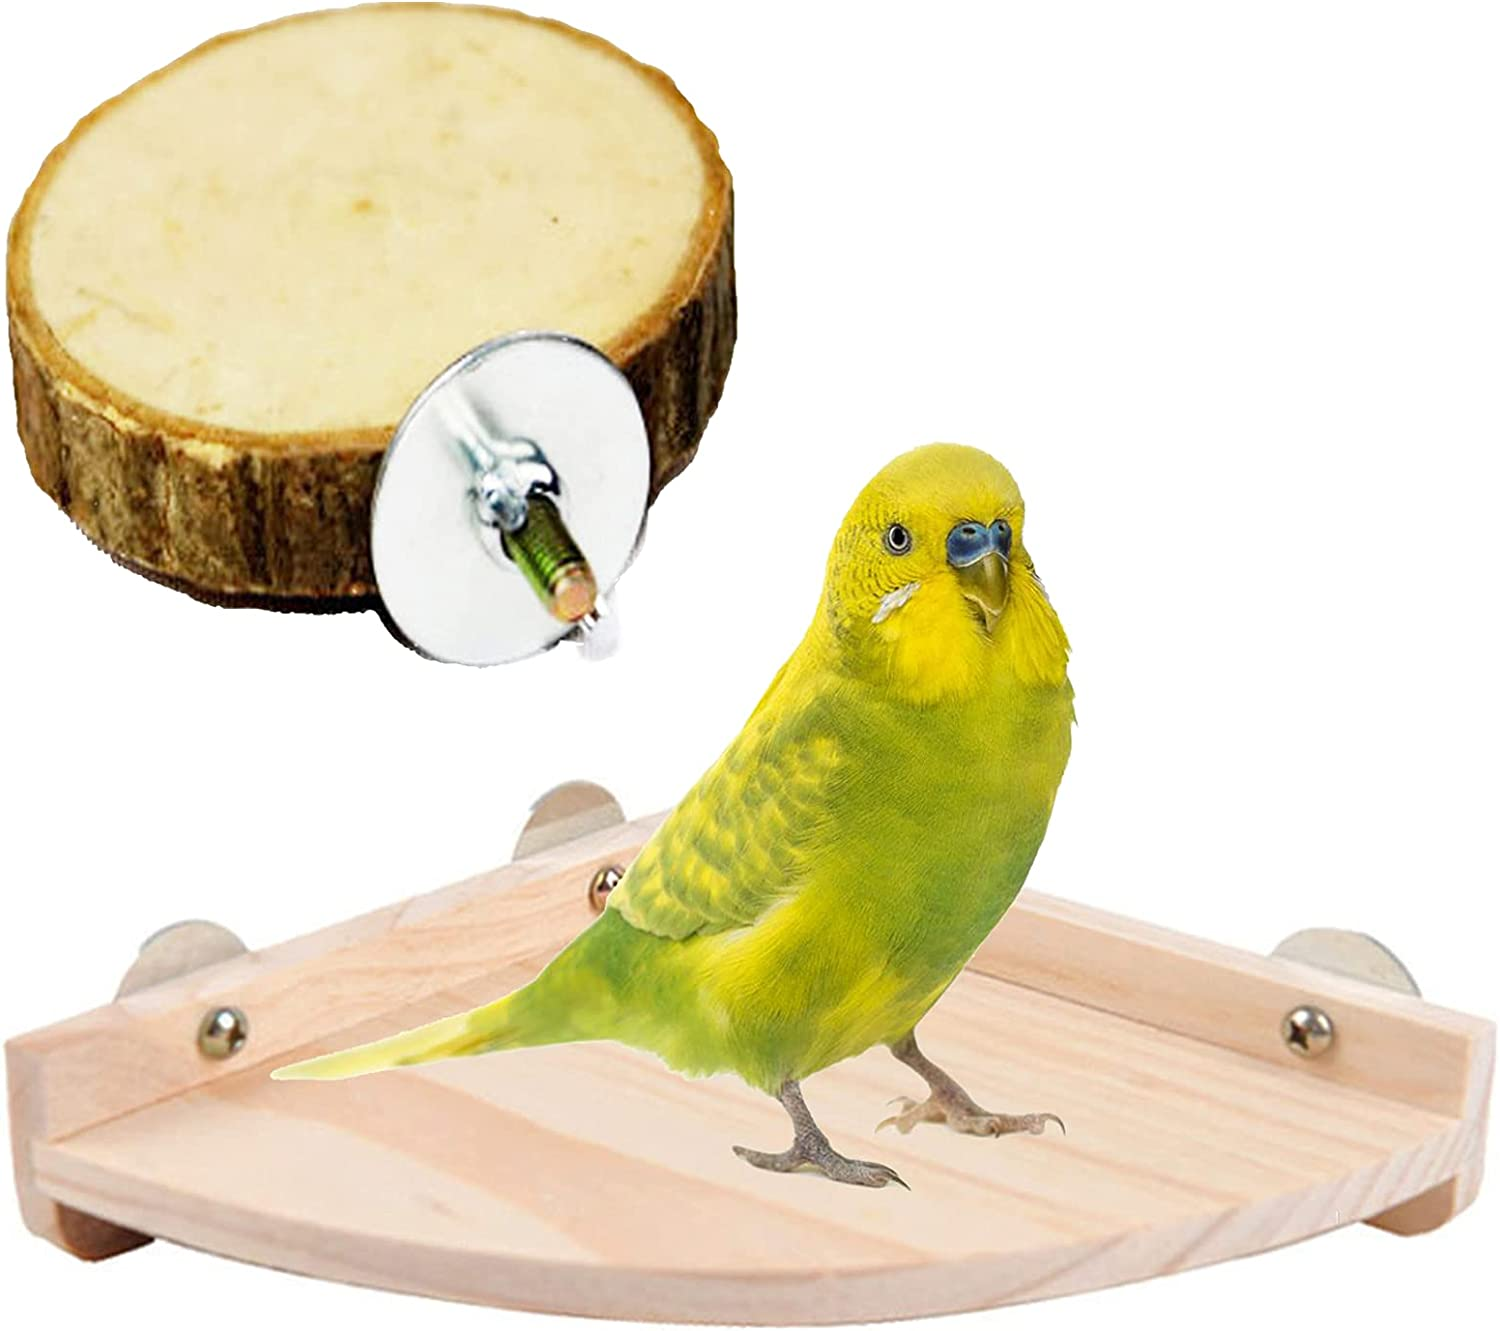 kathson Bird Perch Platform Outlet SALE Parrot Outstanding Stand Playground Cage Accesso